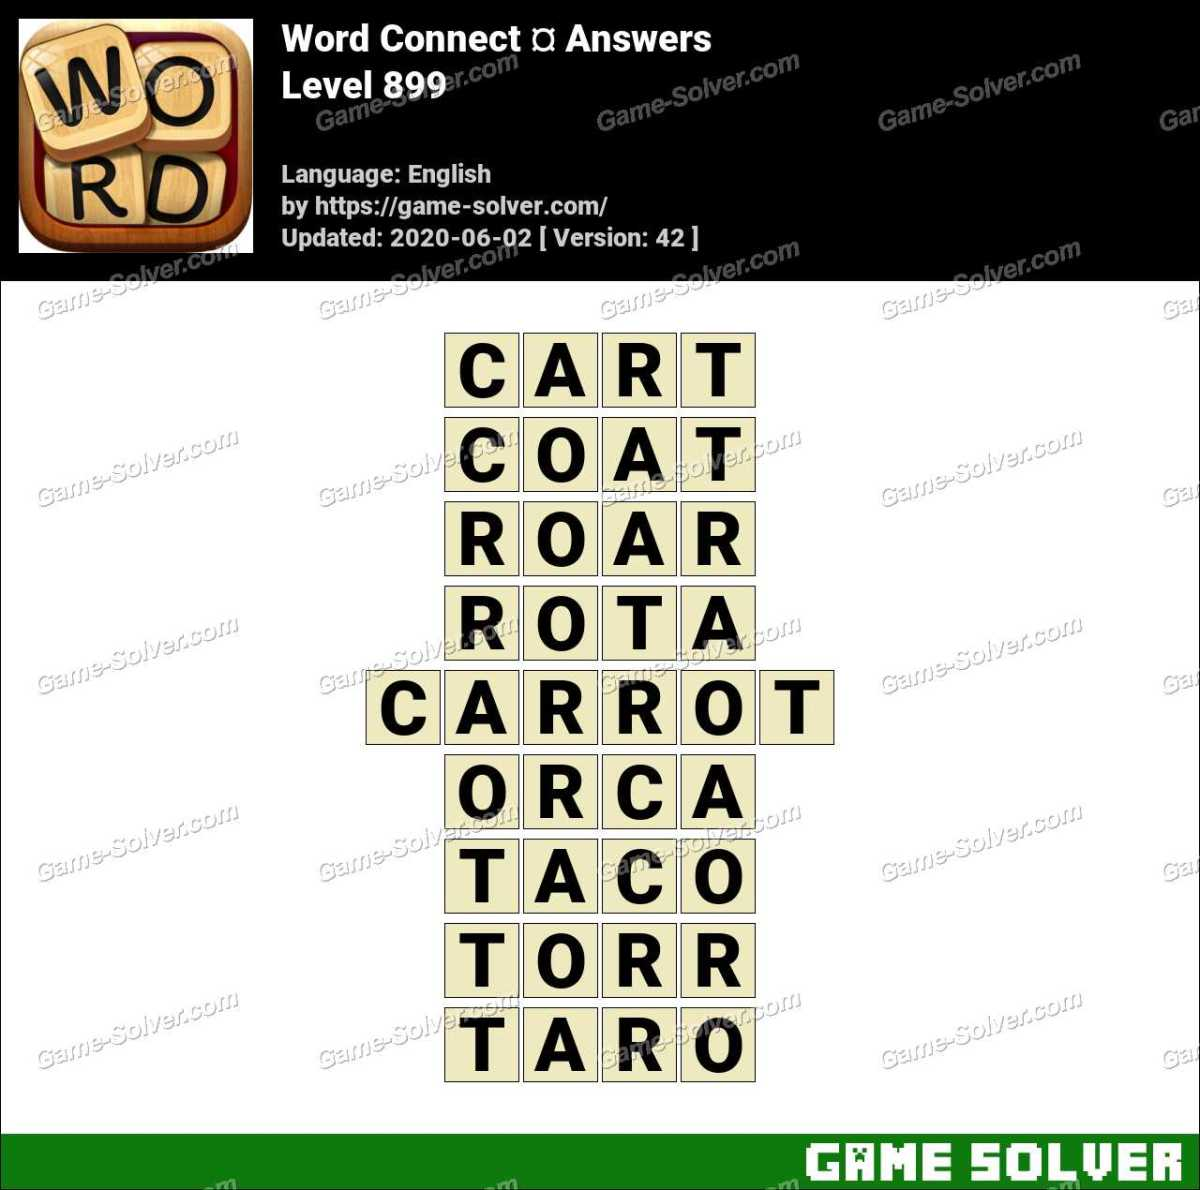 Word Connect Level 899 Answers